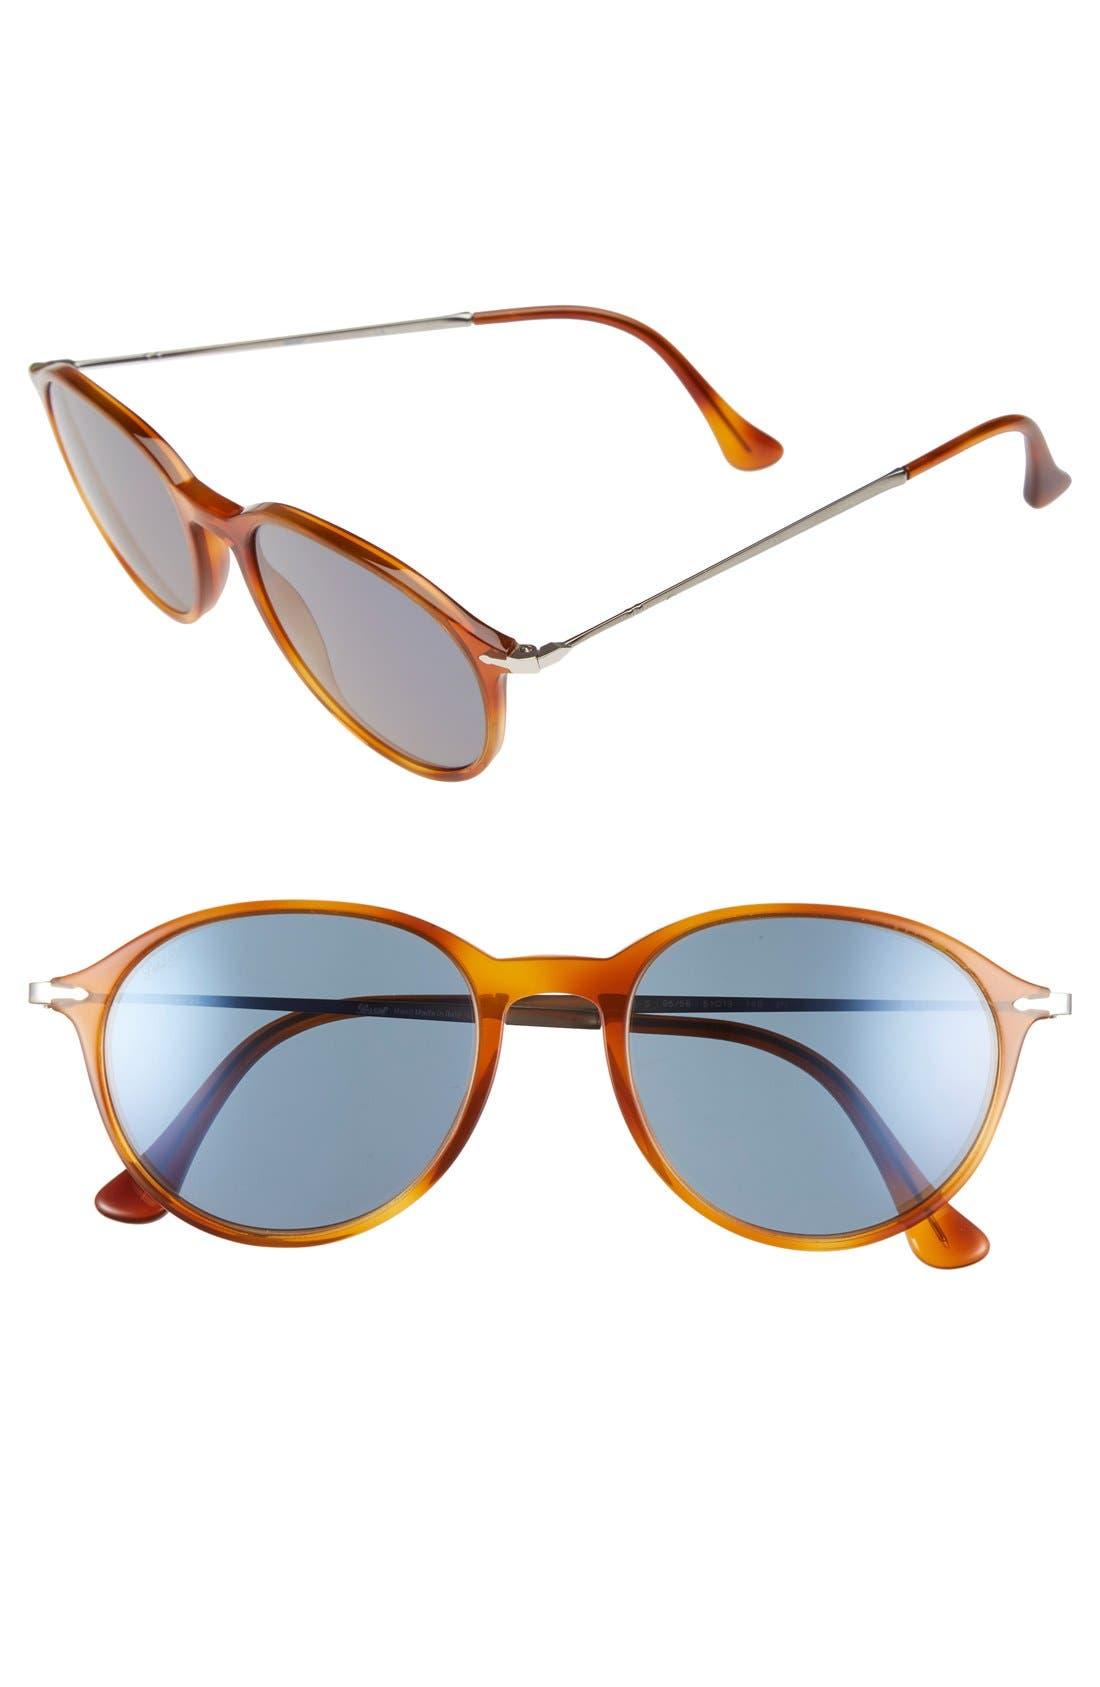 Alternate Image 1 Selected - Persol 51mm Sunglasses